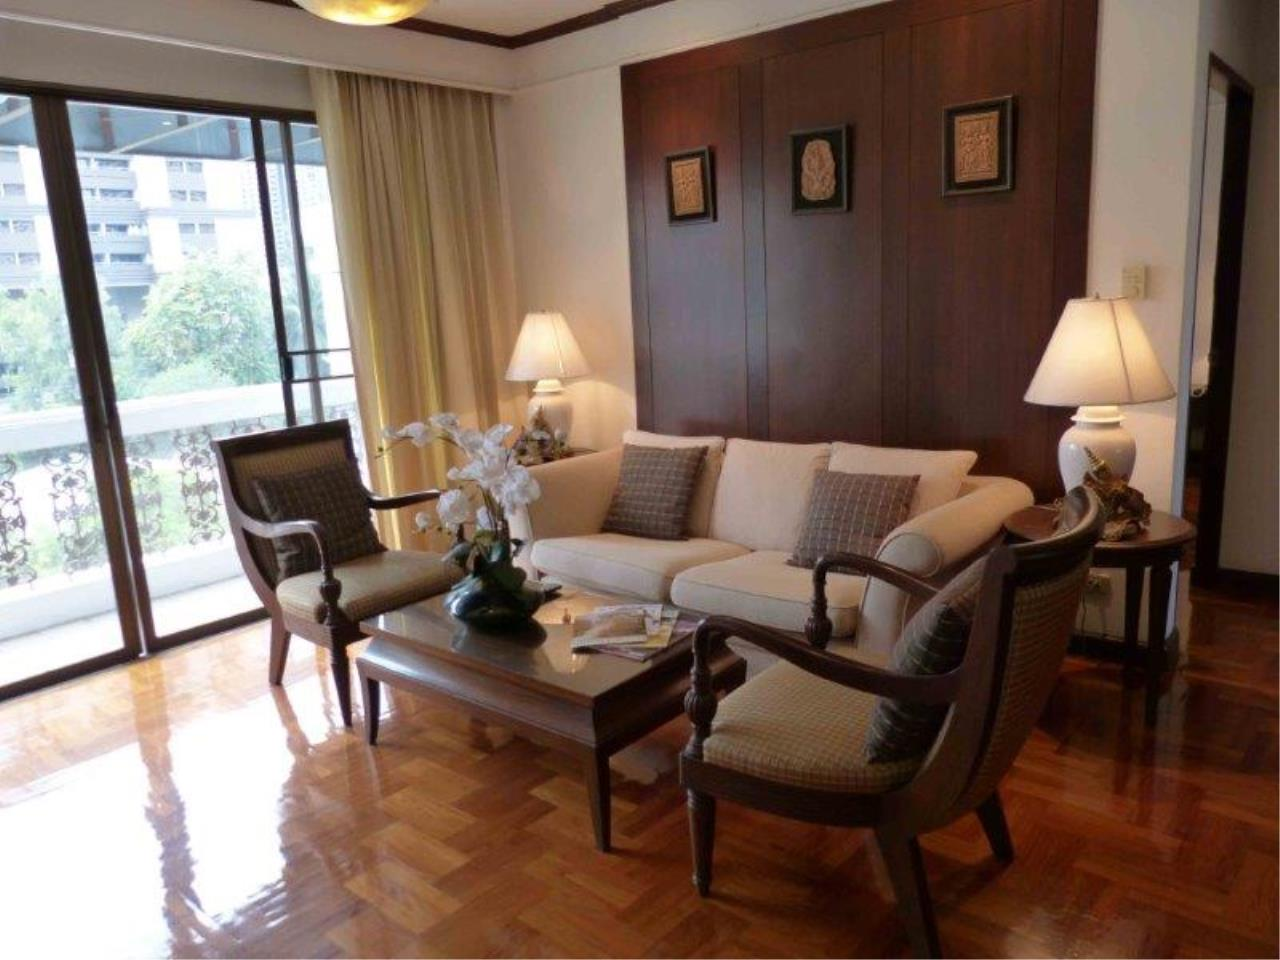 Century21 Skylux Agency's Piya Place Tonson / Apartment (Serviced) For Rent / 2 Bedroom / 88 SQM / BTS Chit Lom / Bangkok 2